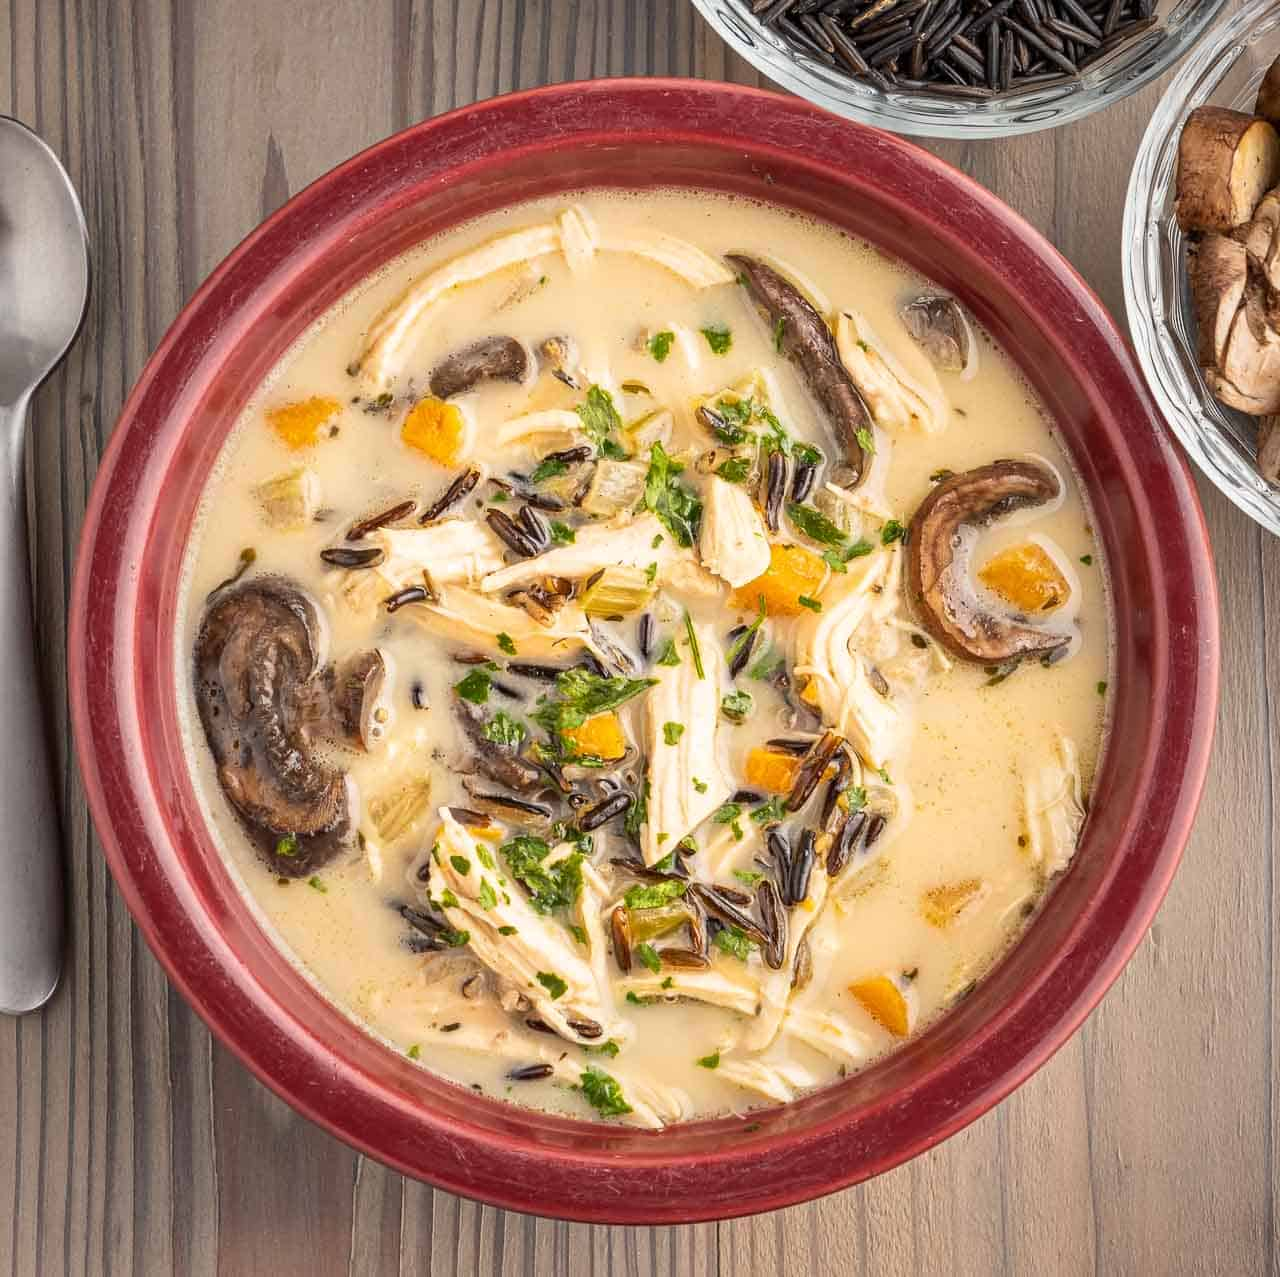 A creamy bowl of chicken and wild rice soup, with a spoon, some mushrooms, and some uncooked wild rice peeking in at the edges.